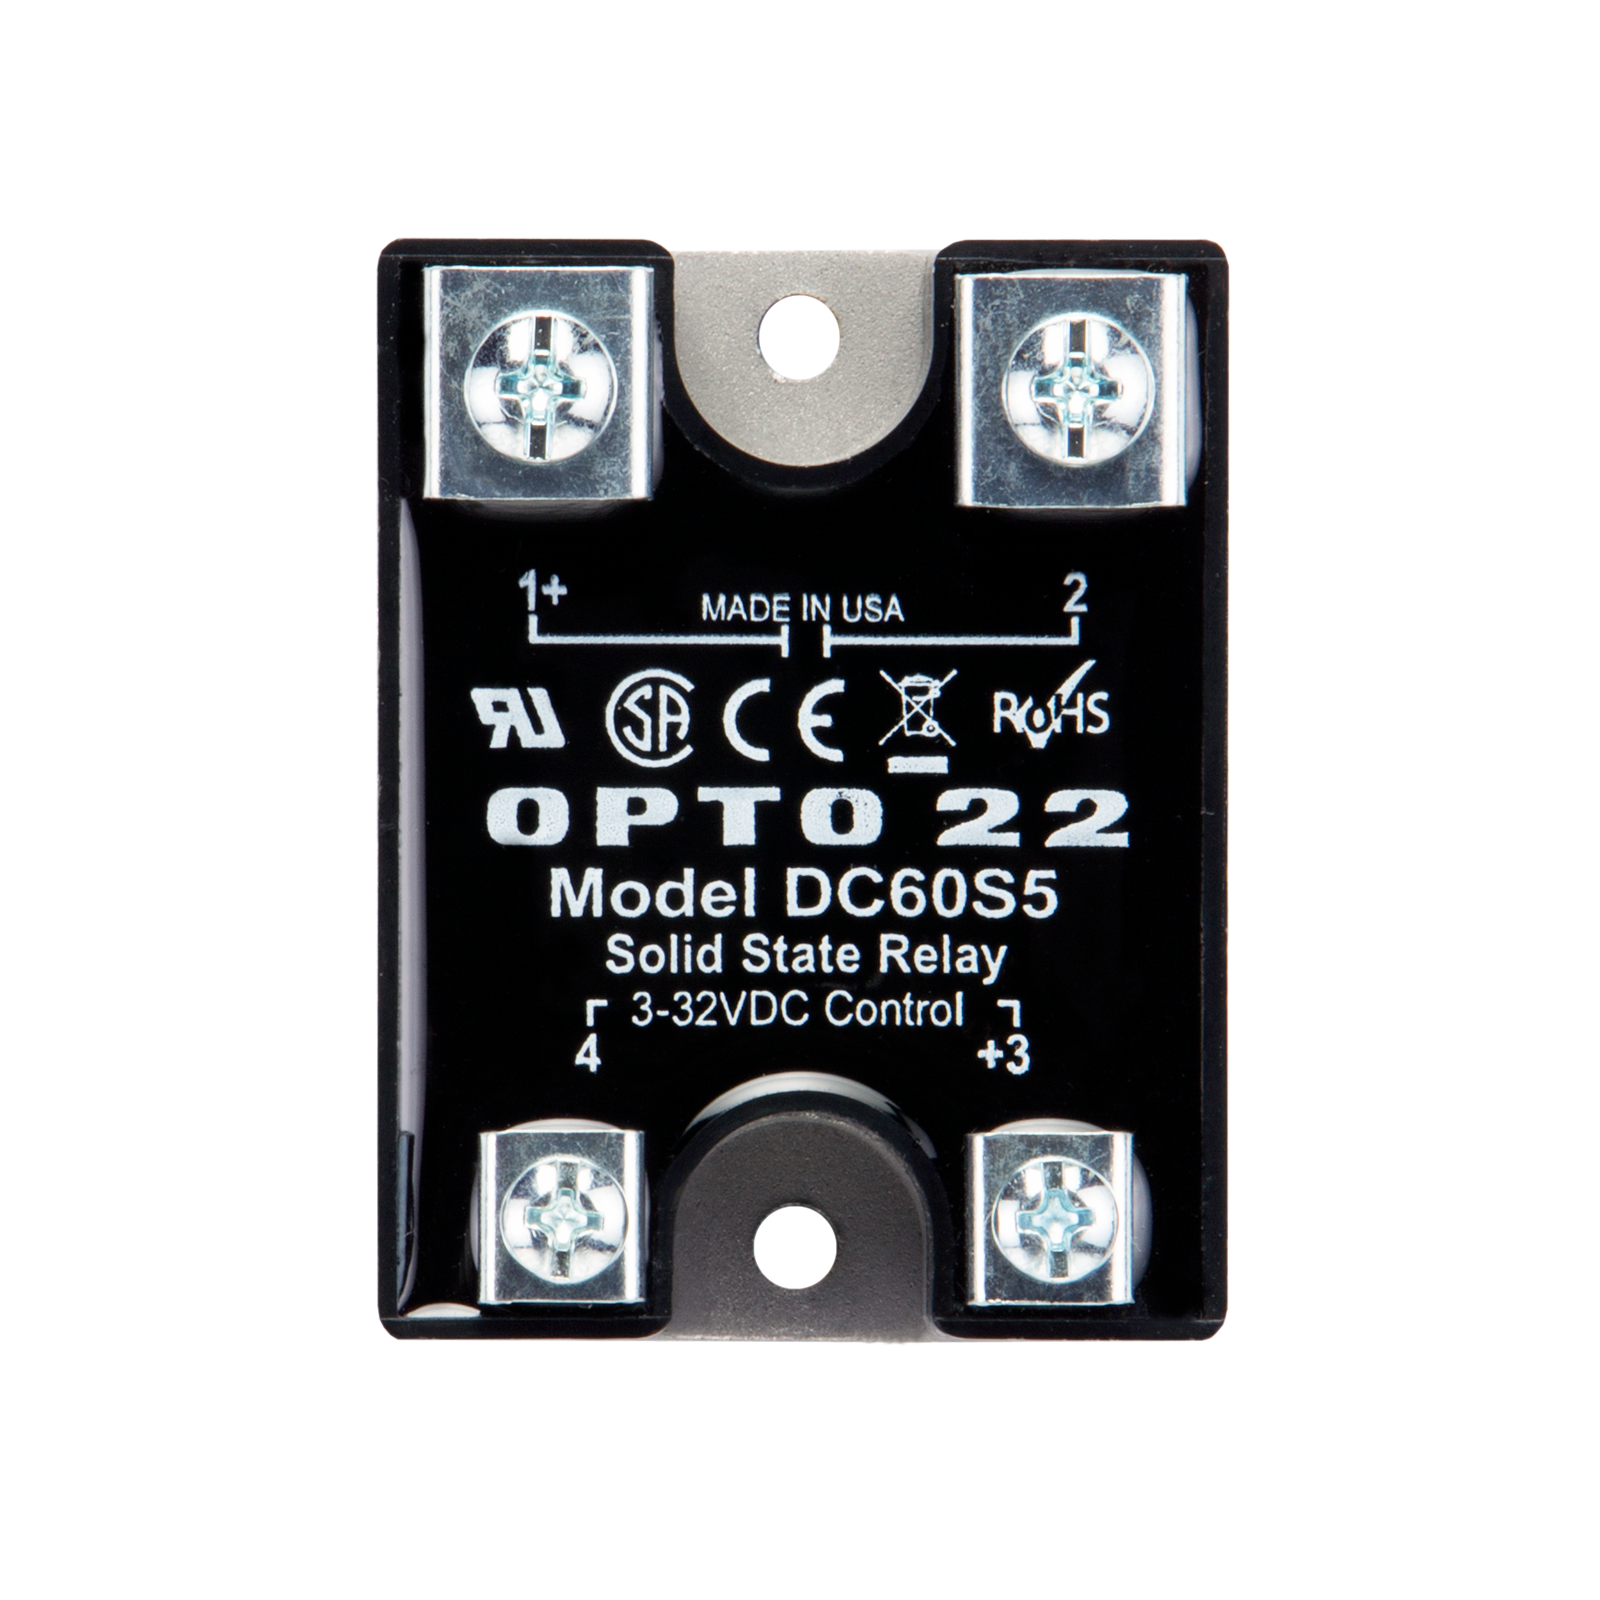 [DVZP_7254]   Opto22 - DC60S5 - 60 VDC, 5 Amp, DC Control Solid State Relay (SSR) | Opto 22 Ssr Wiring Diagram |  | Opto 22